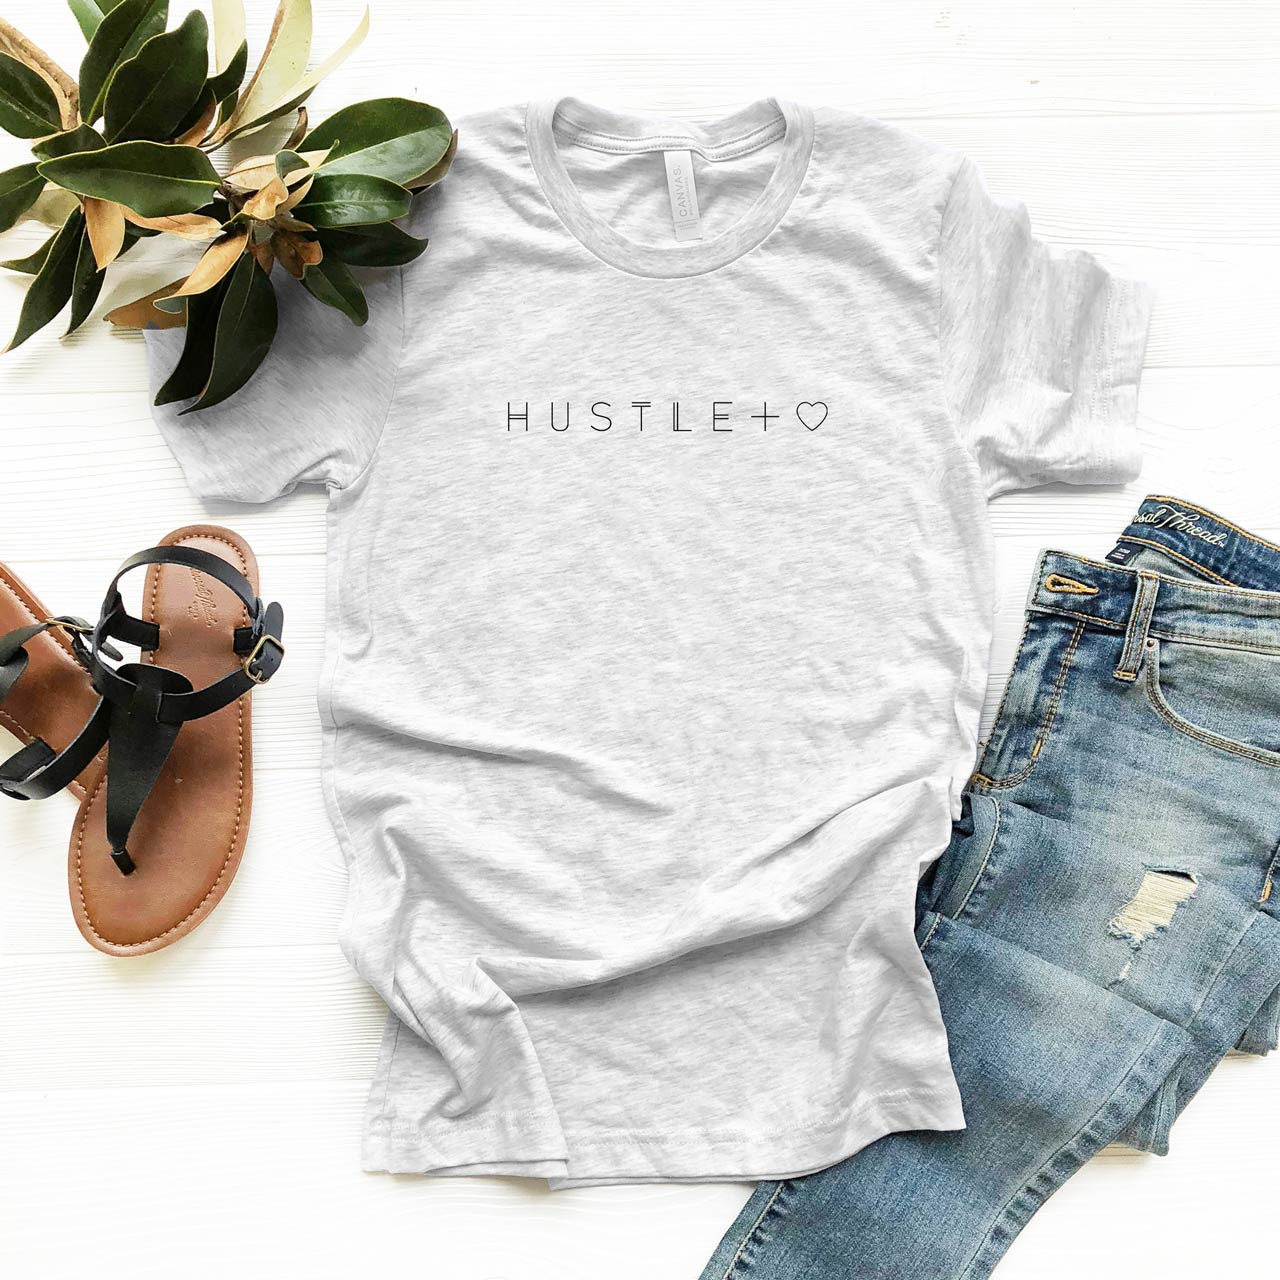 HUSTLE + HEART Vintage T-Shirt (Black on Light Gray Fleck) from The Printed Home